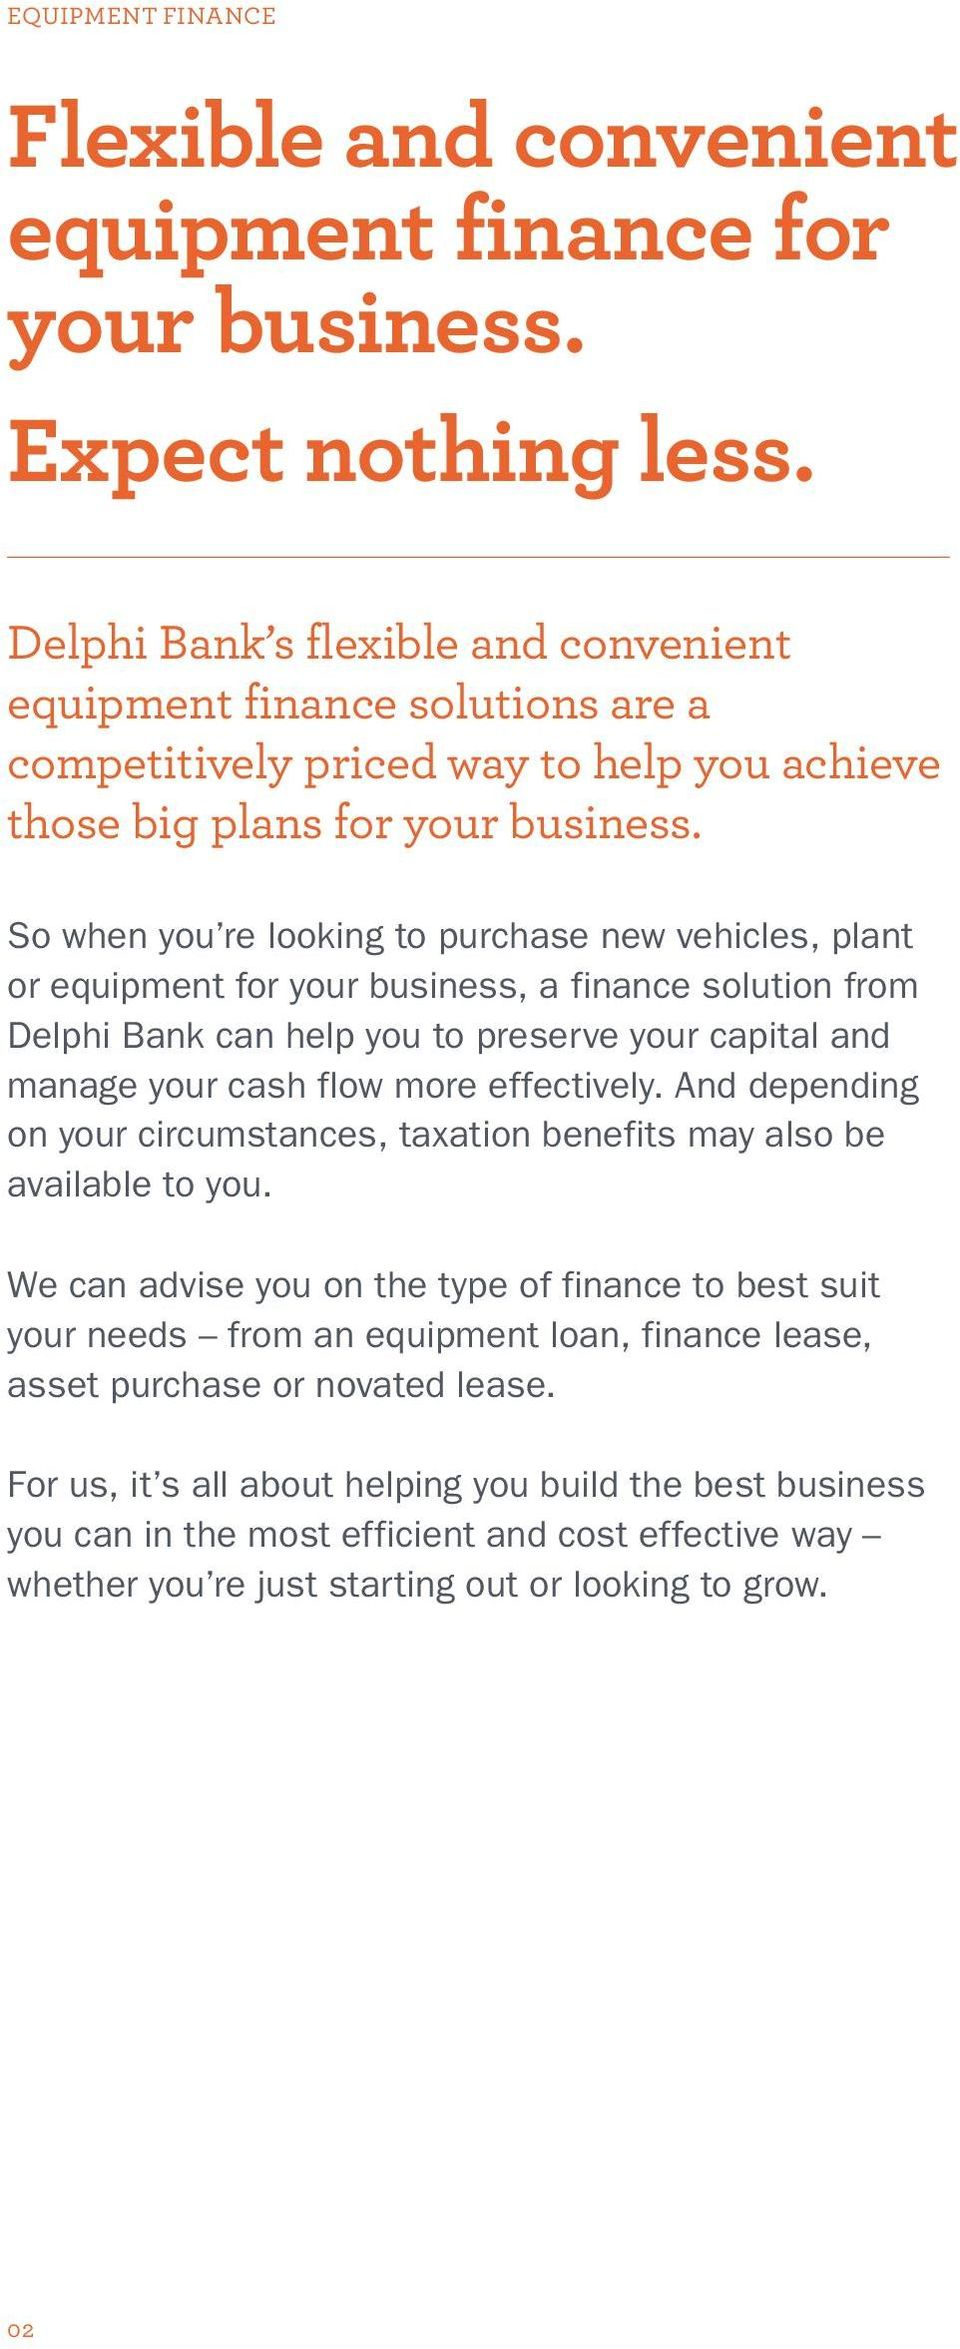 So when you re looking to purchase new vehicles, plant or equipment for your business, a finance solution from Delphi Bank can help you to preserve your capital and manage your cash flow more